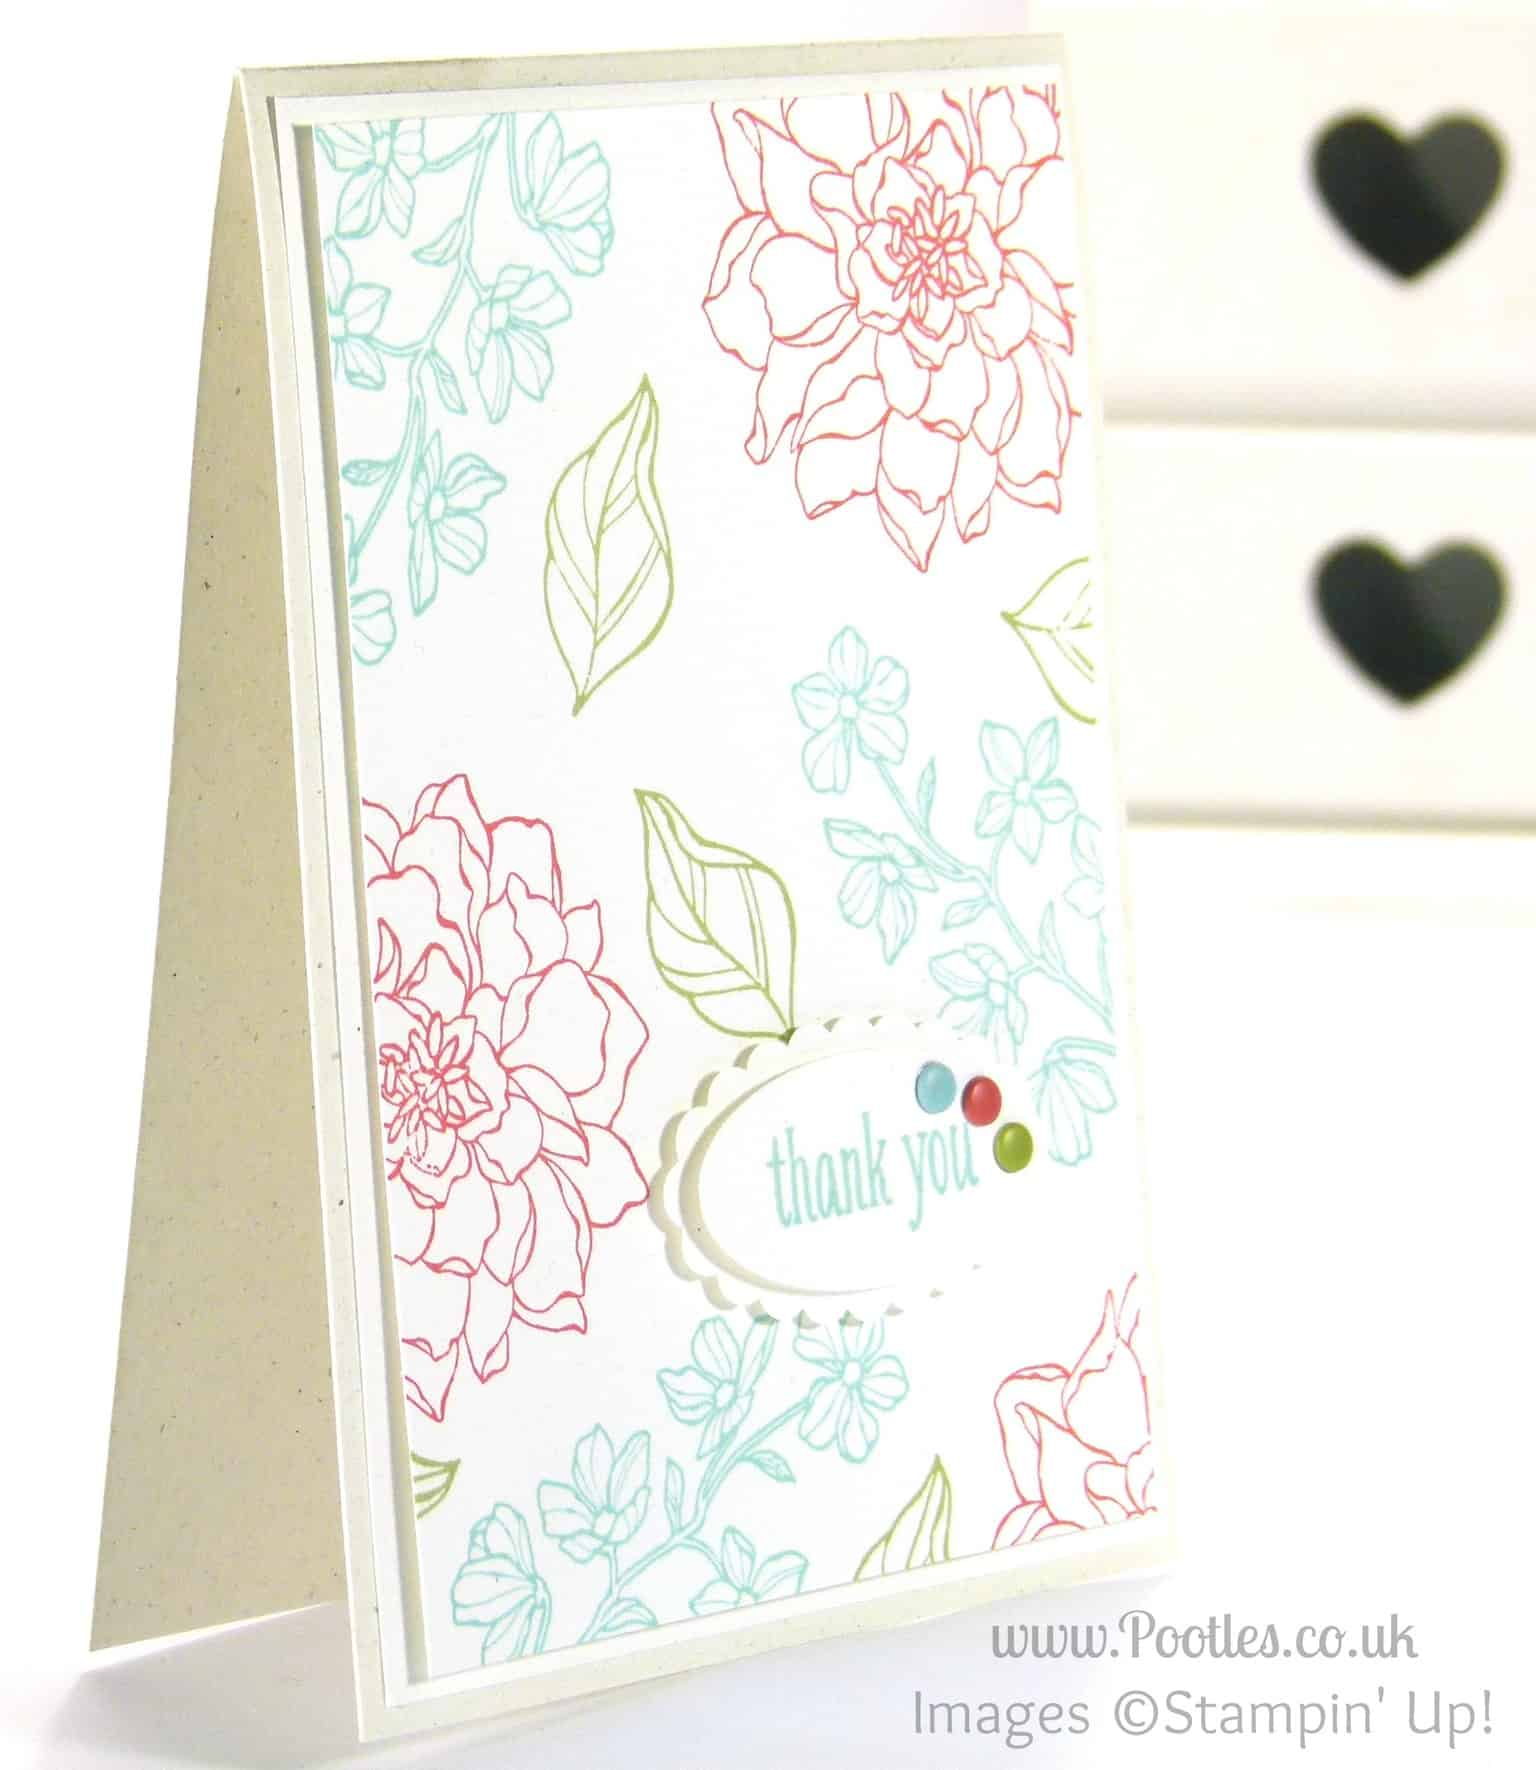 Stampin' Up! UK Independent Demonstrator - Pootles. Peaceful Petals, a Subtles Card!